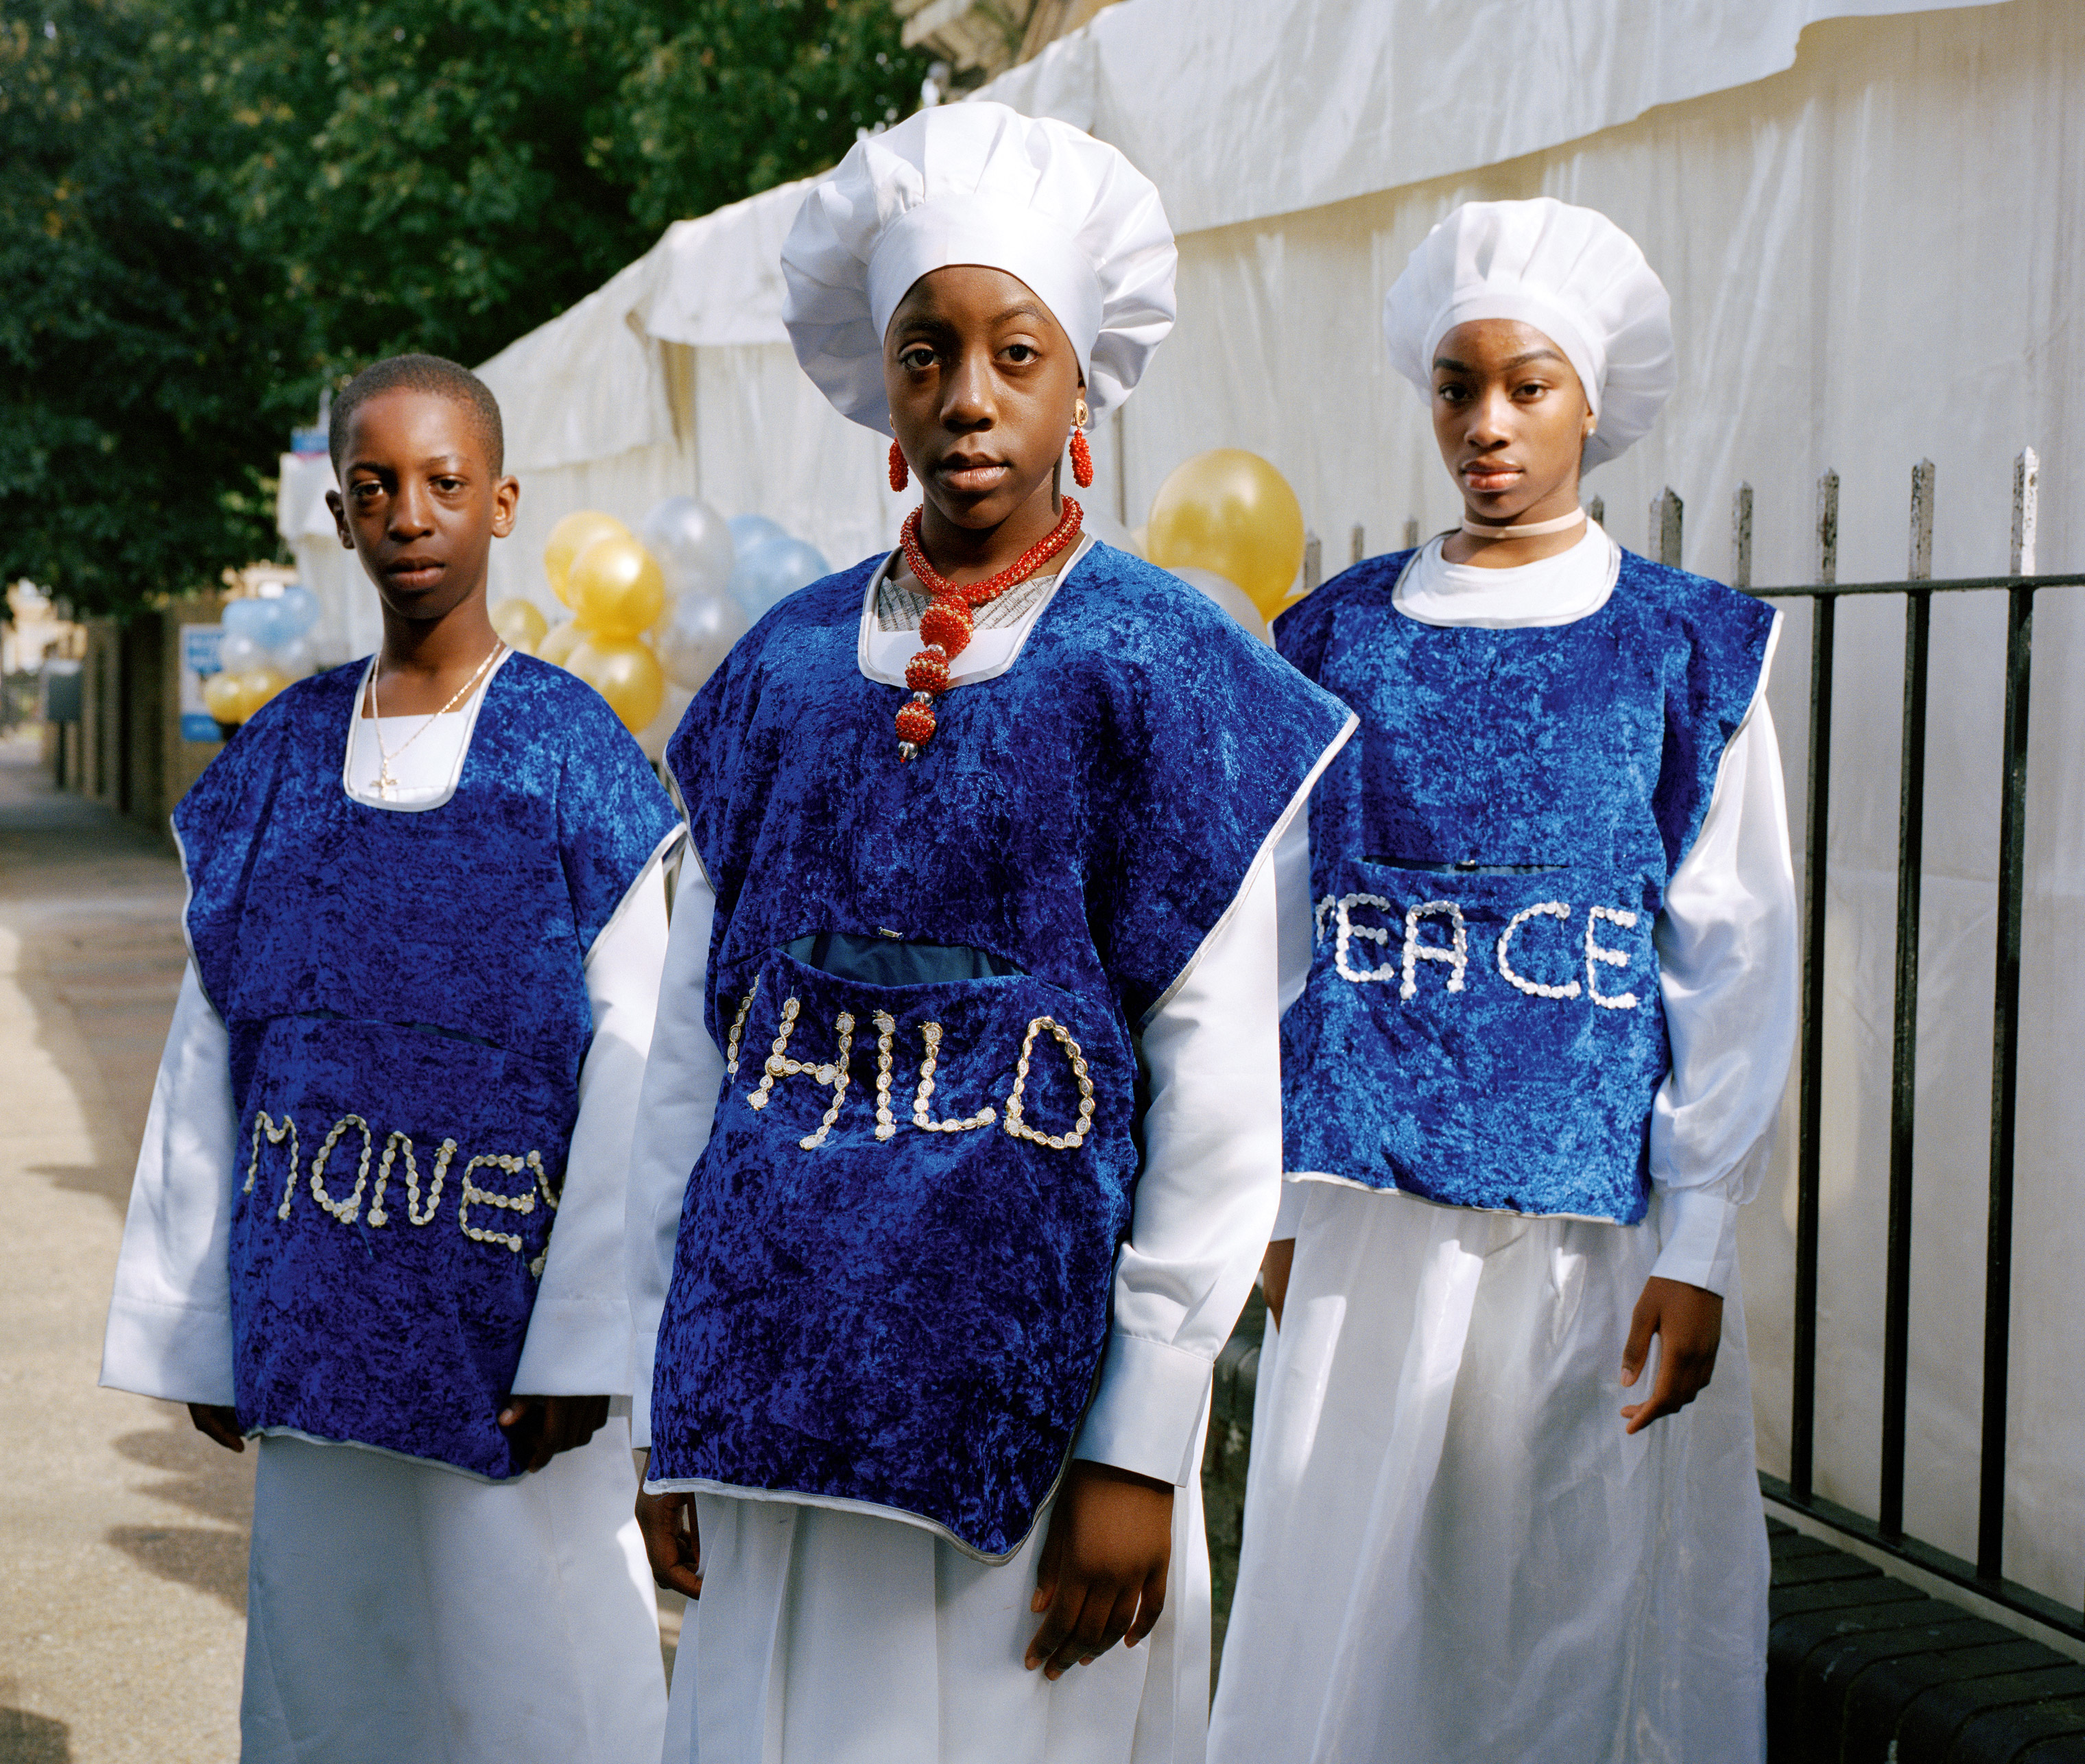 Josiah, Bukky and Lauren stand outside church on children's anniversary service wearing clothing that reads Money, Child, Peace as they collect donations from their fellow congregants for charity.